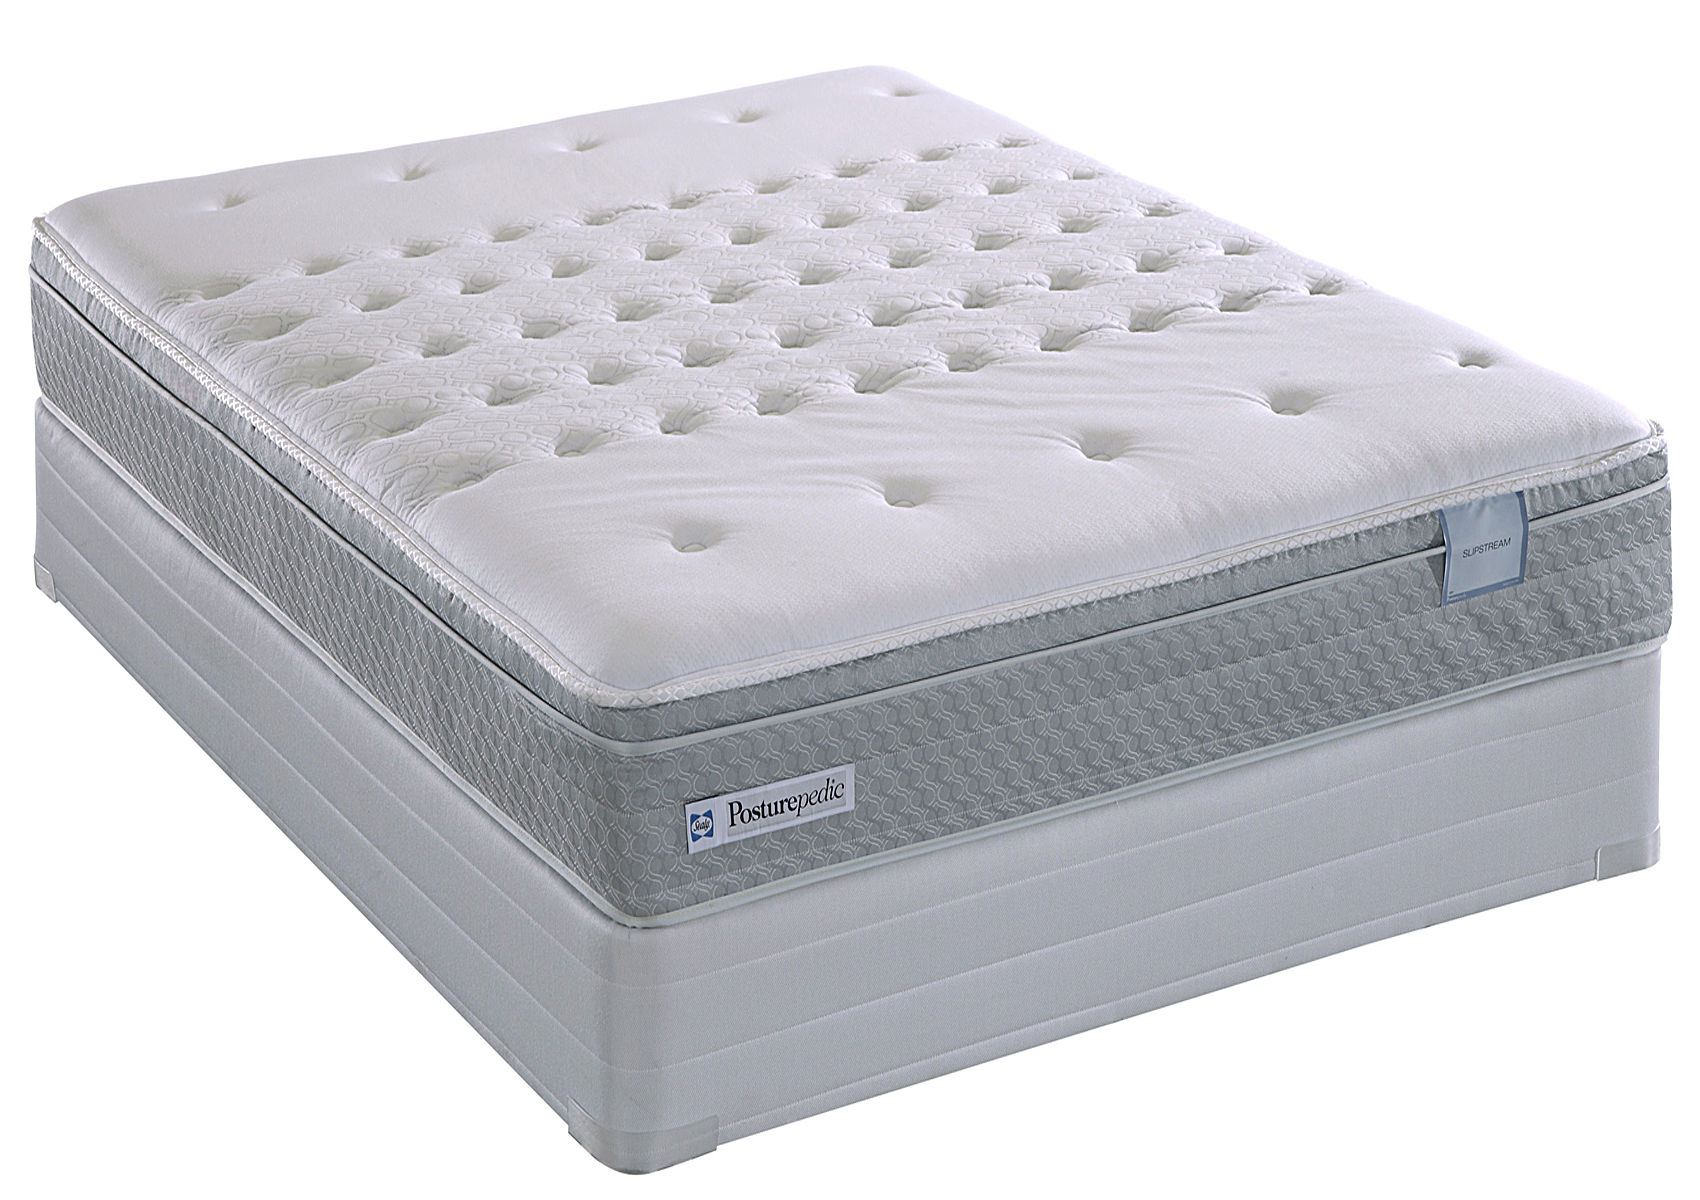 Sealy Mattresses Bring A History Of Innovation And Research